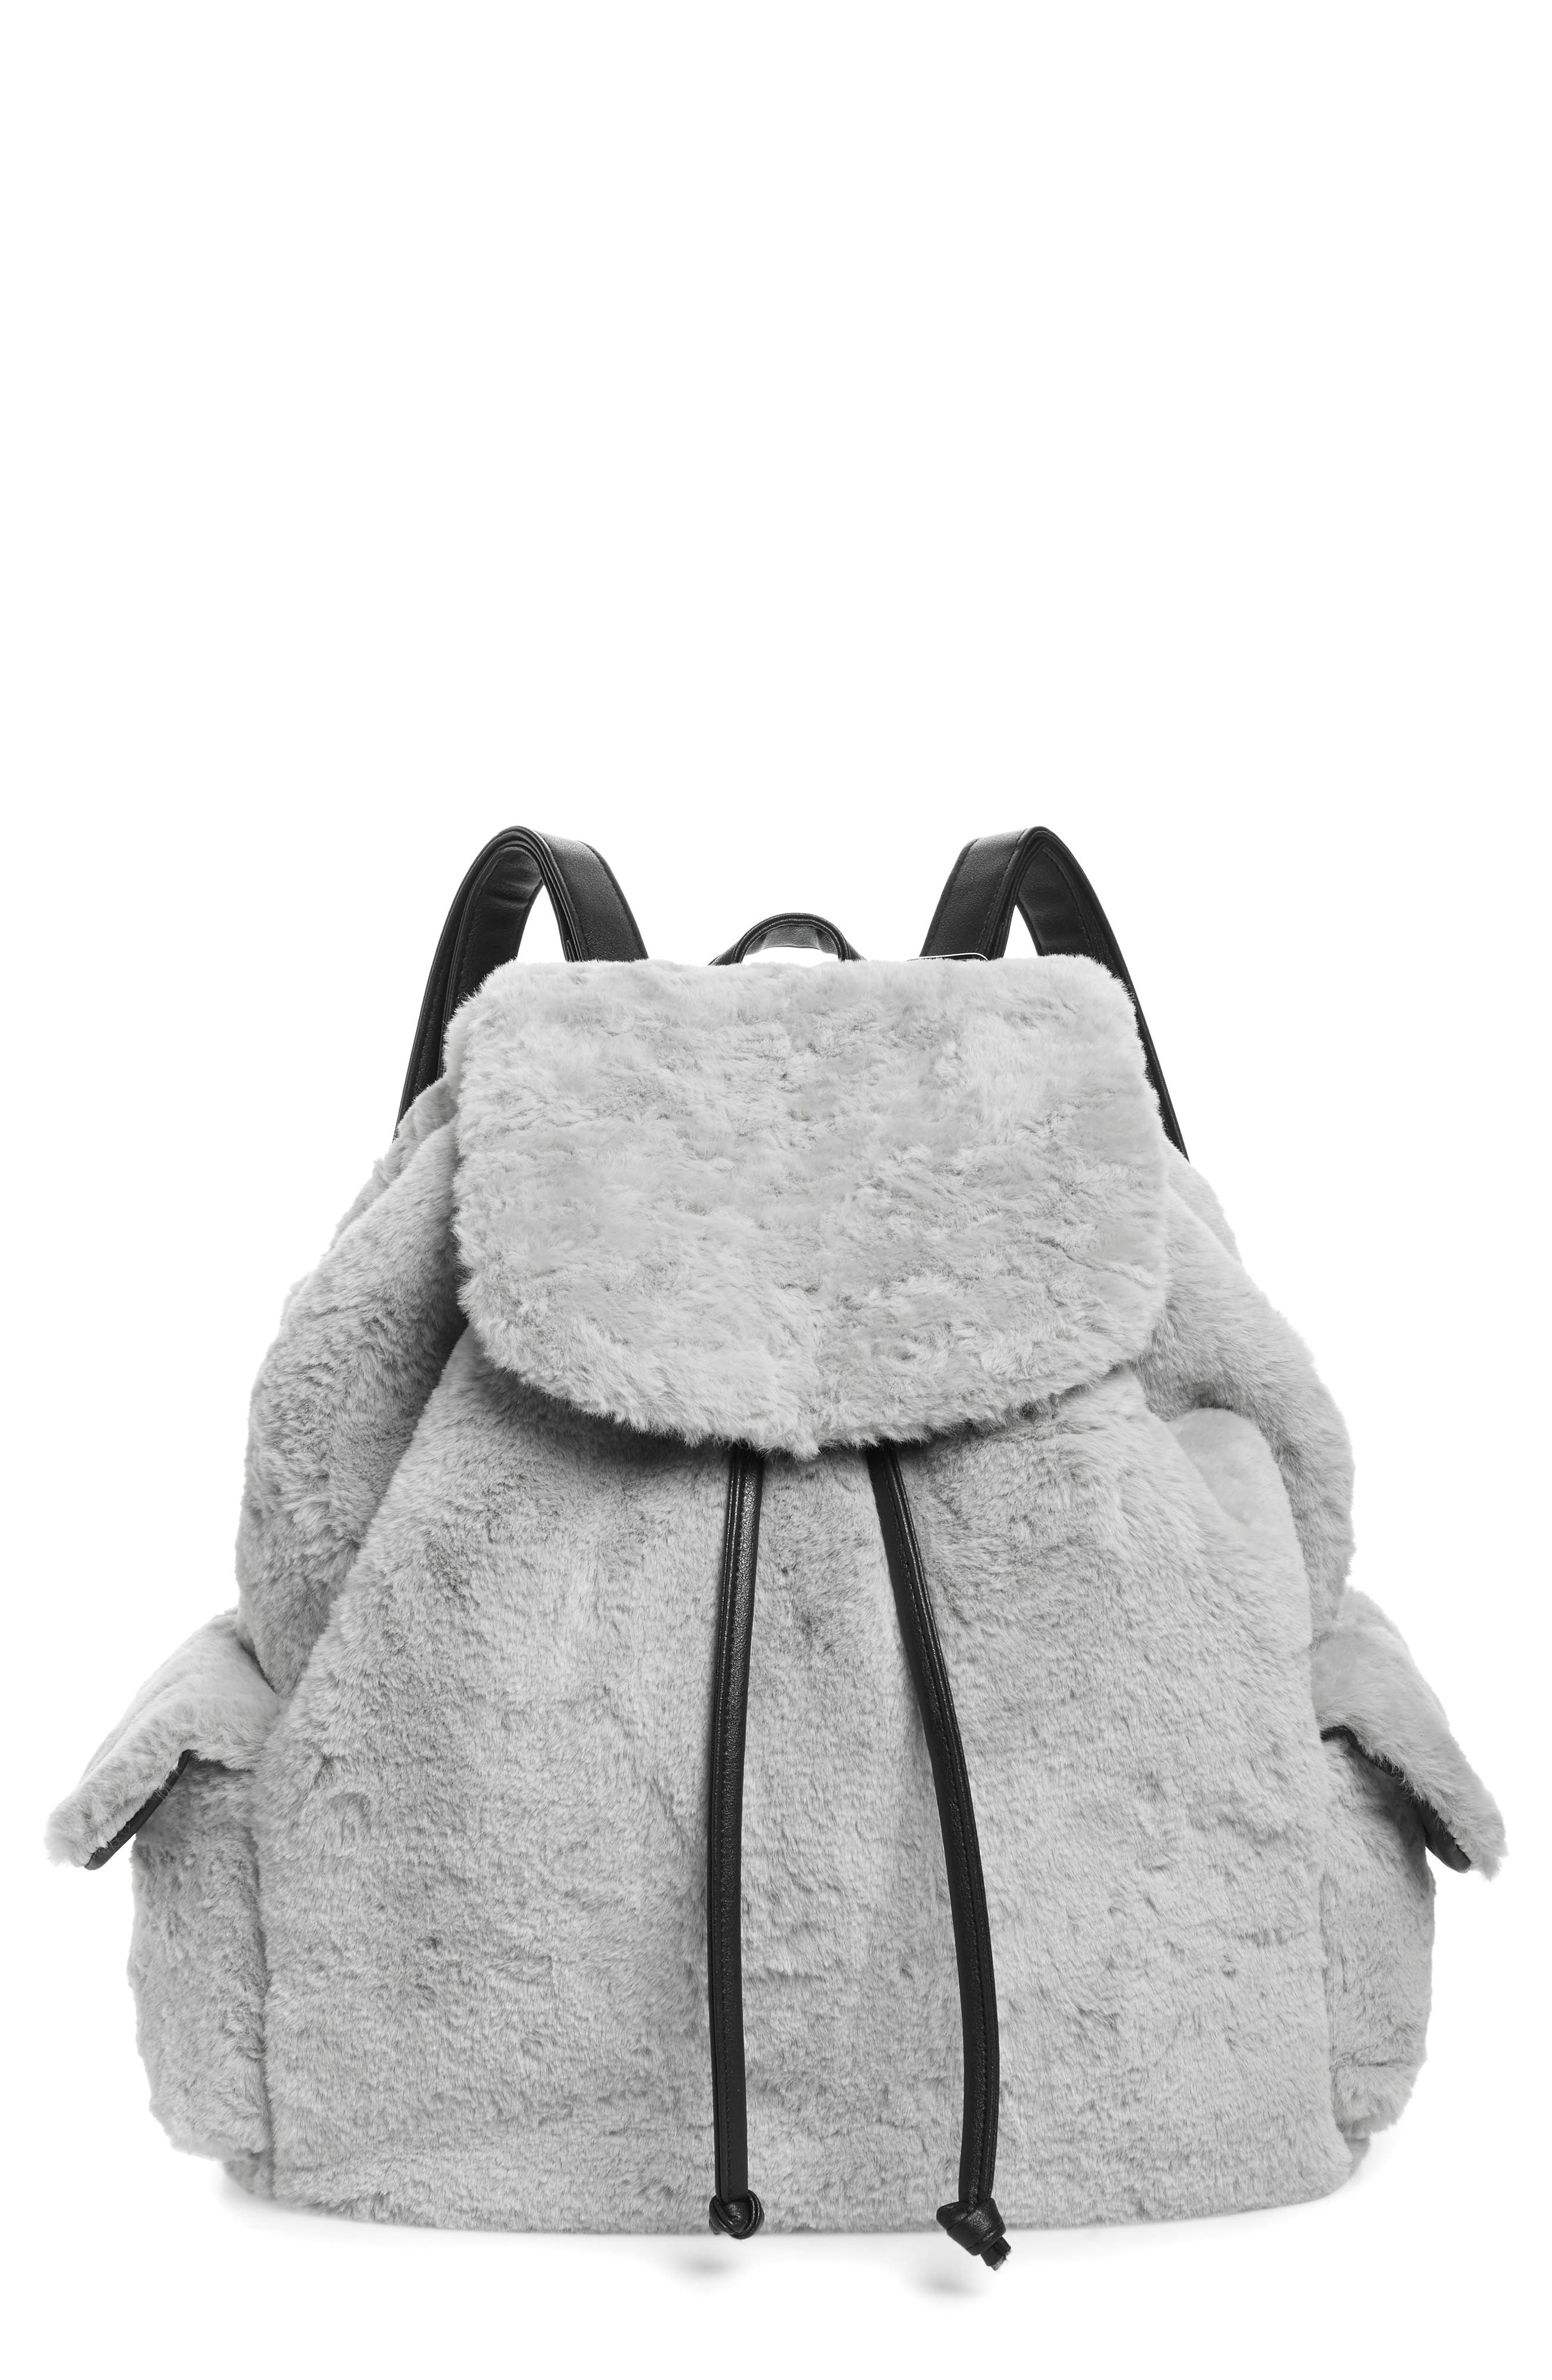 YOKI BAGS Faux Fur Oversized Utility Backpack, Main, color, GREY